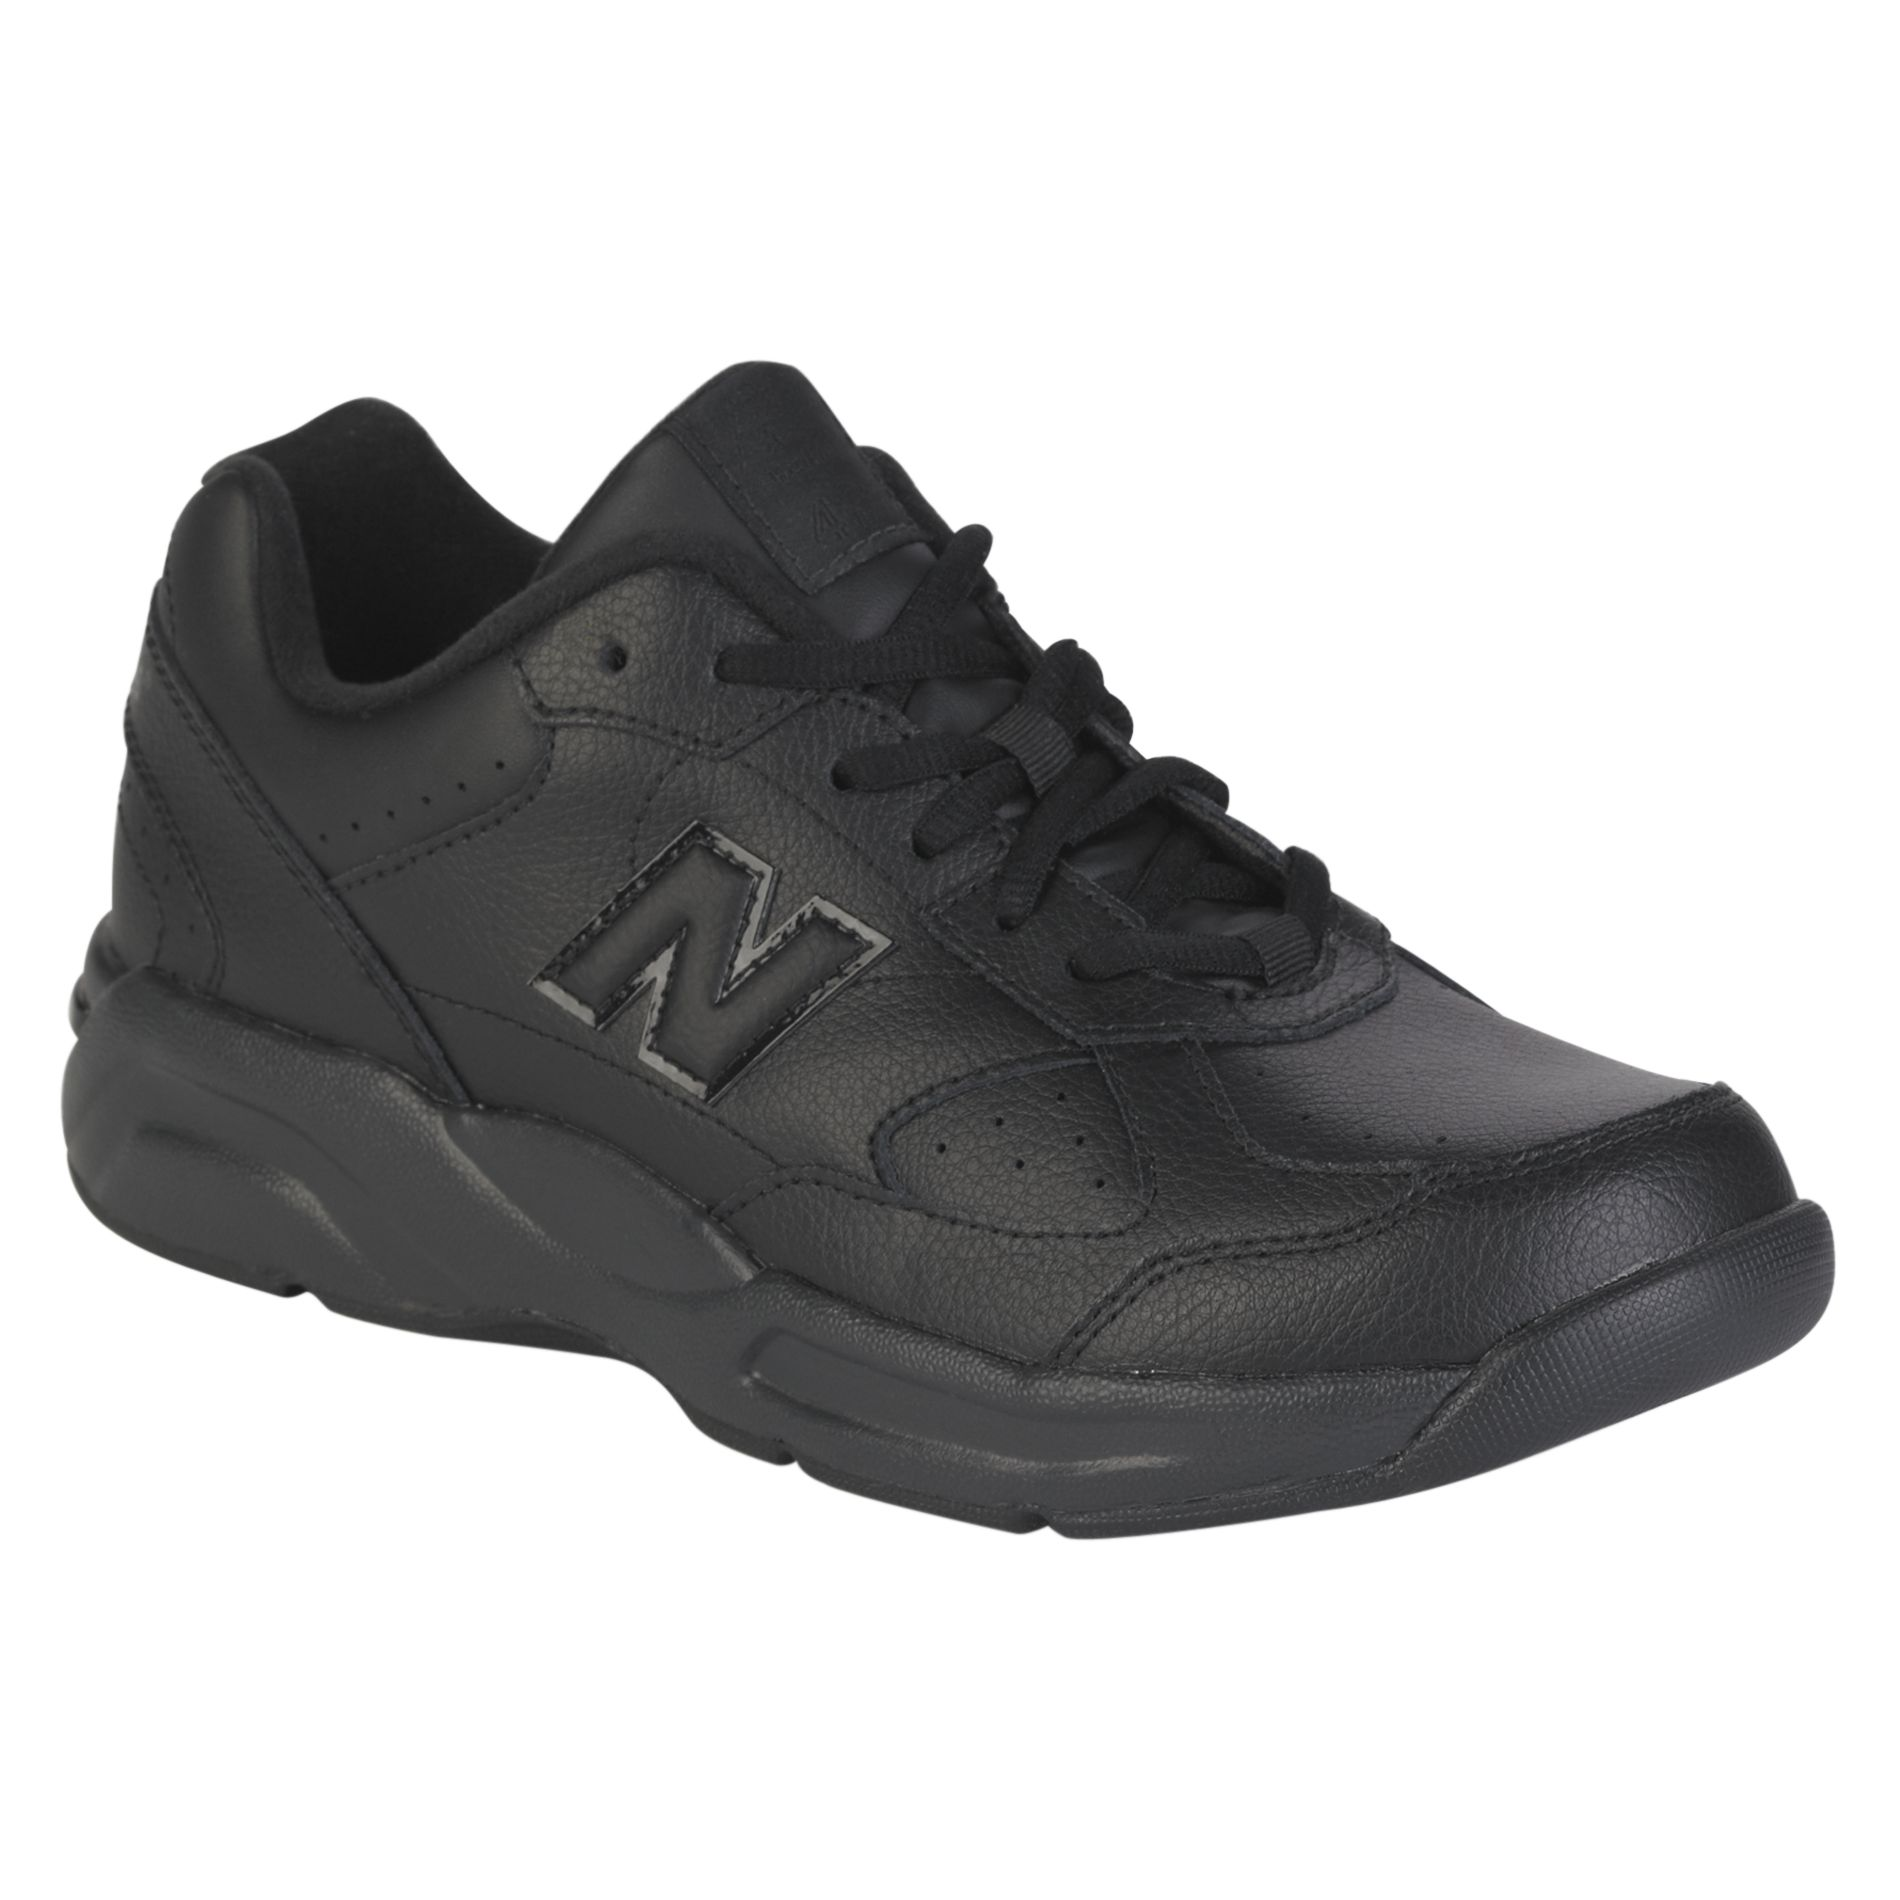 New Balance 475 Mens Walking Shoe Pick Up Your Pace With